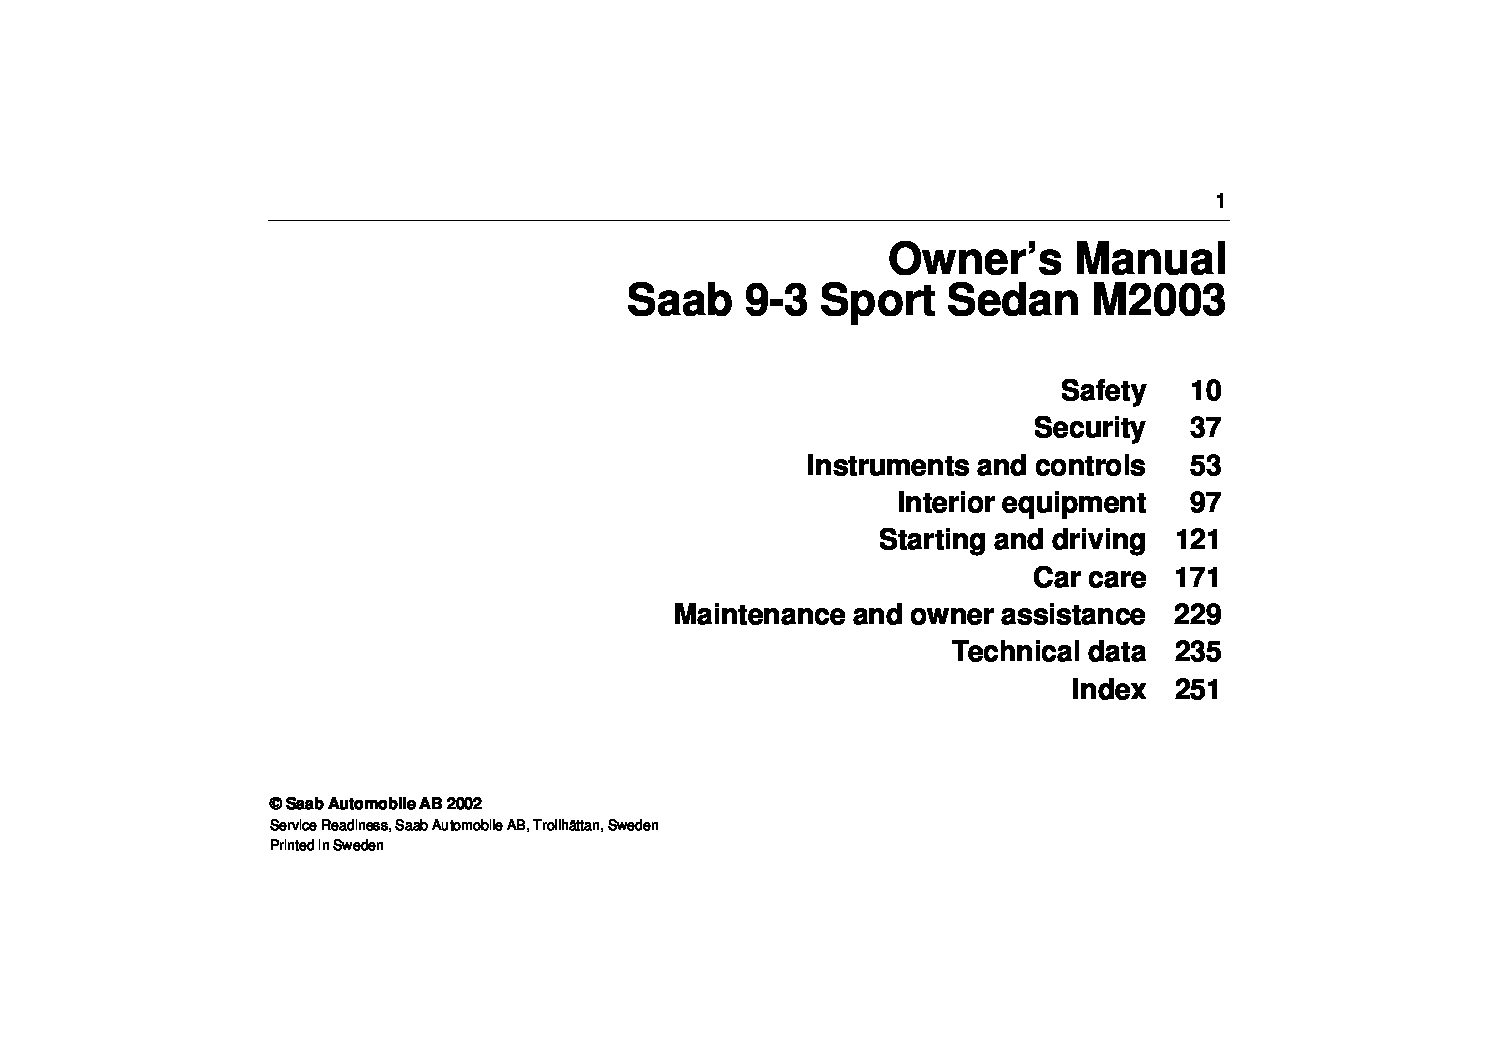 2003 saab 9 3 owner manual product user guide instruction u2022 rh testdpc co 2003 saab 9-3 convertible owners manual 2003 saab 9-3 convertible owners manual pdf